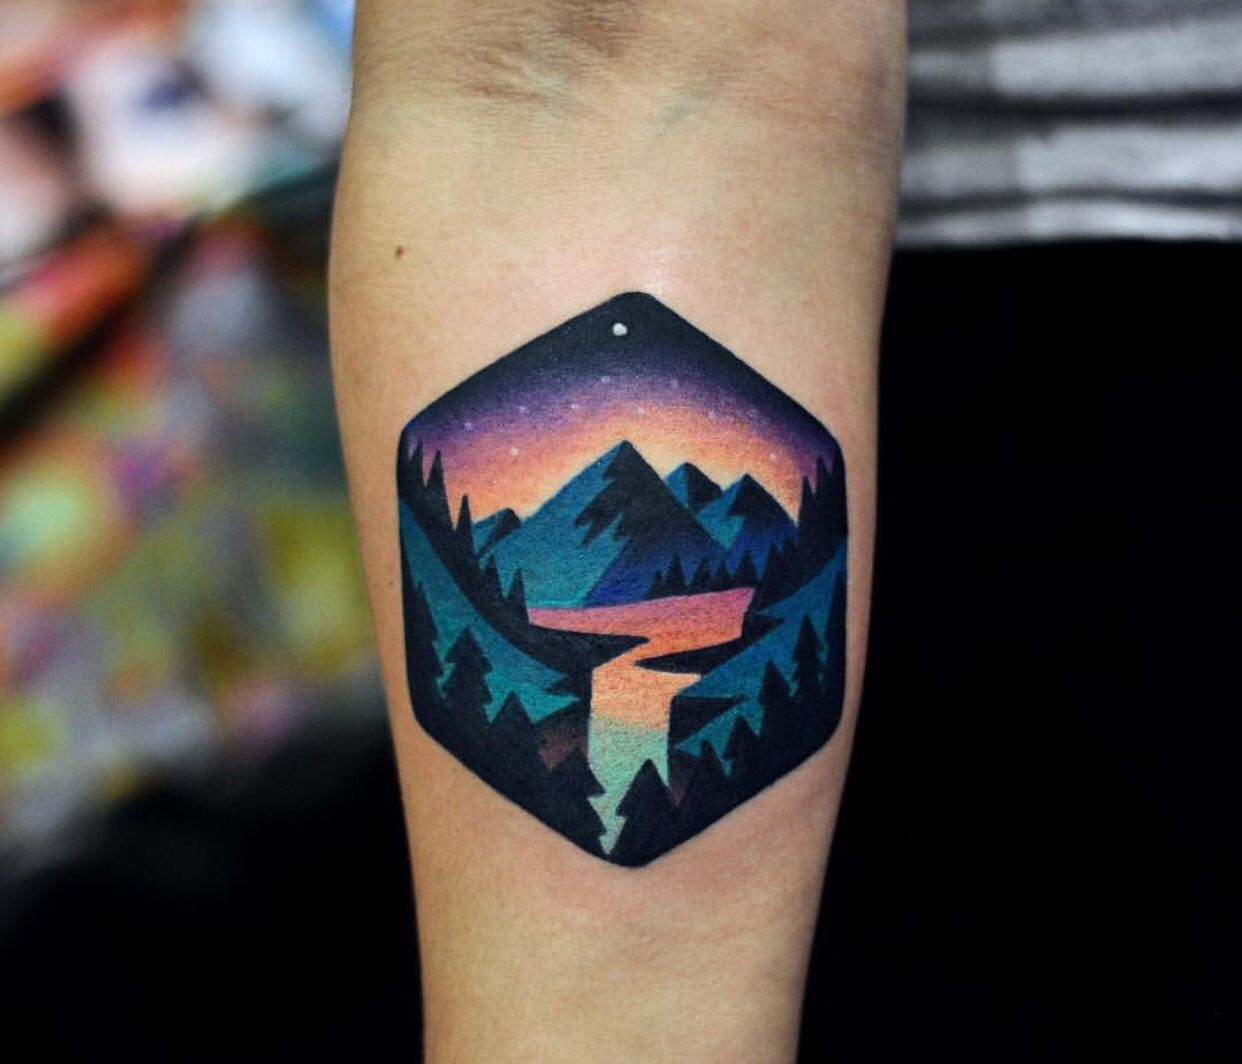 Cote Tattoo david cote tattoo. i don't usually like colored tattoos but this is